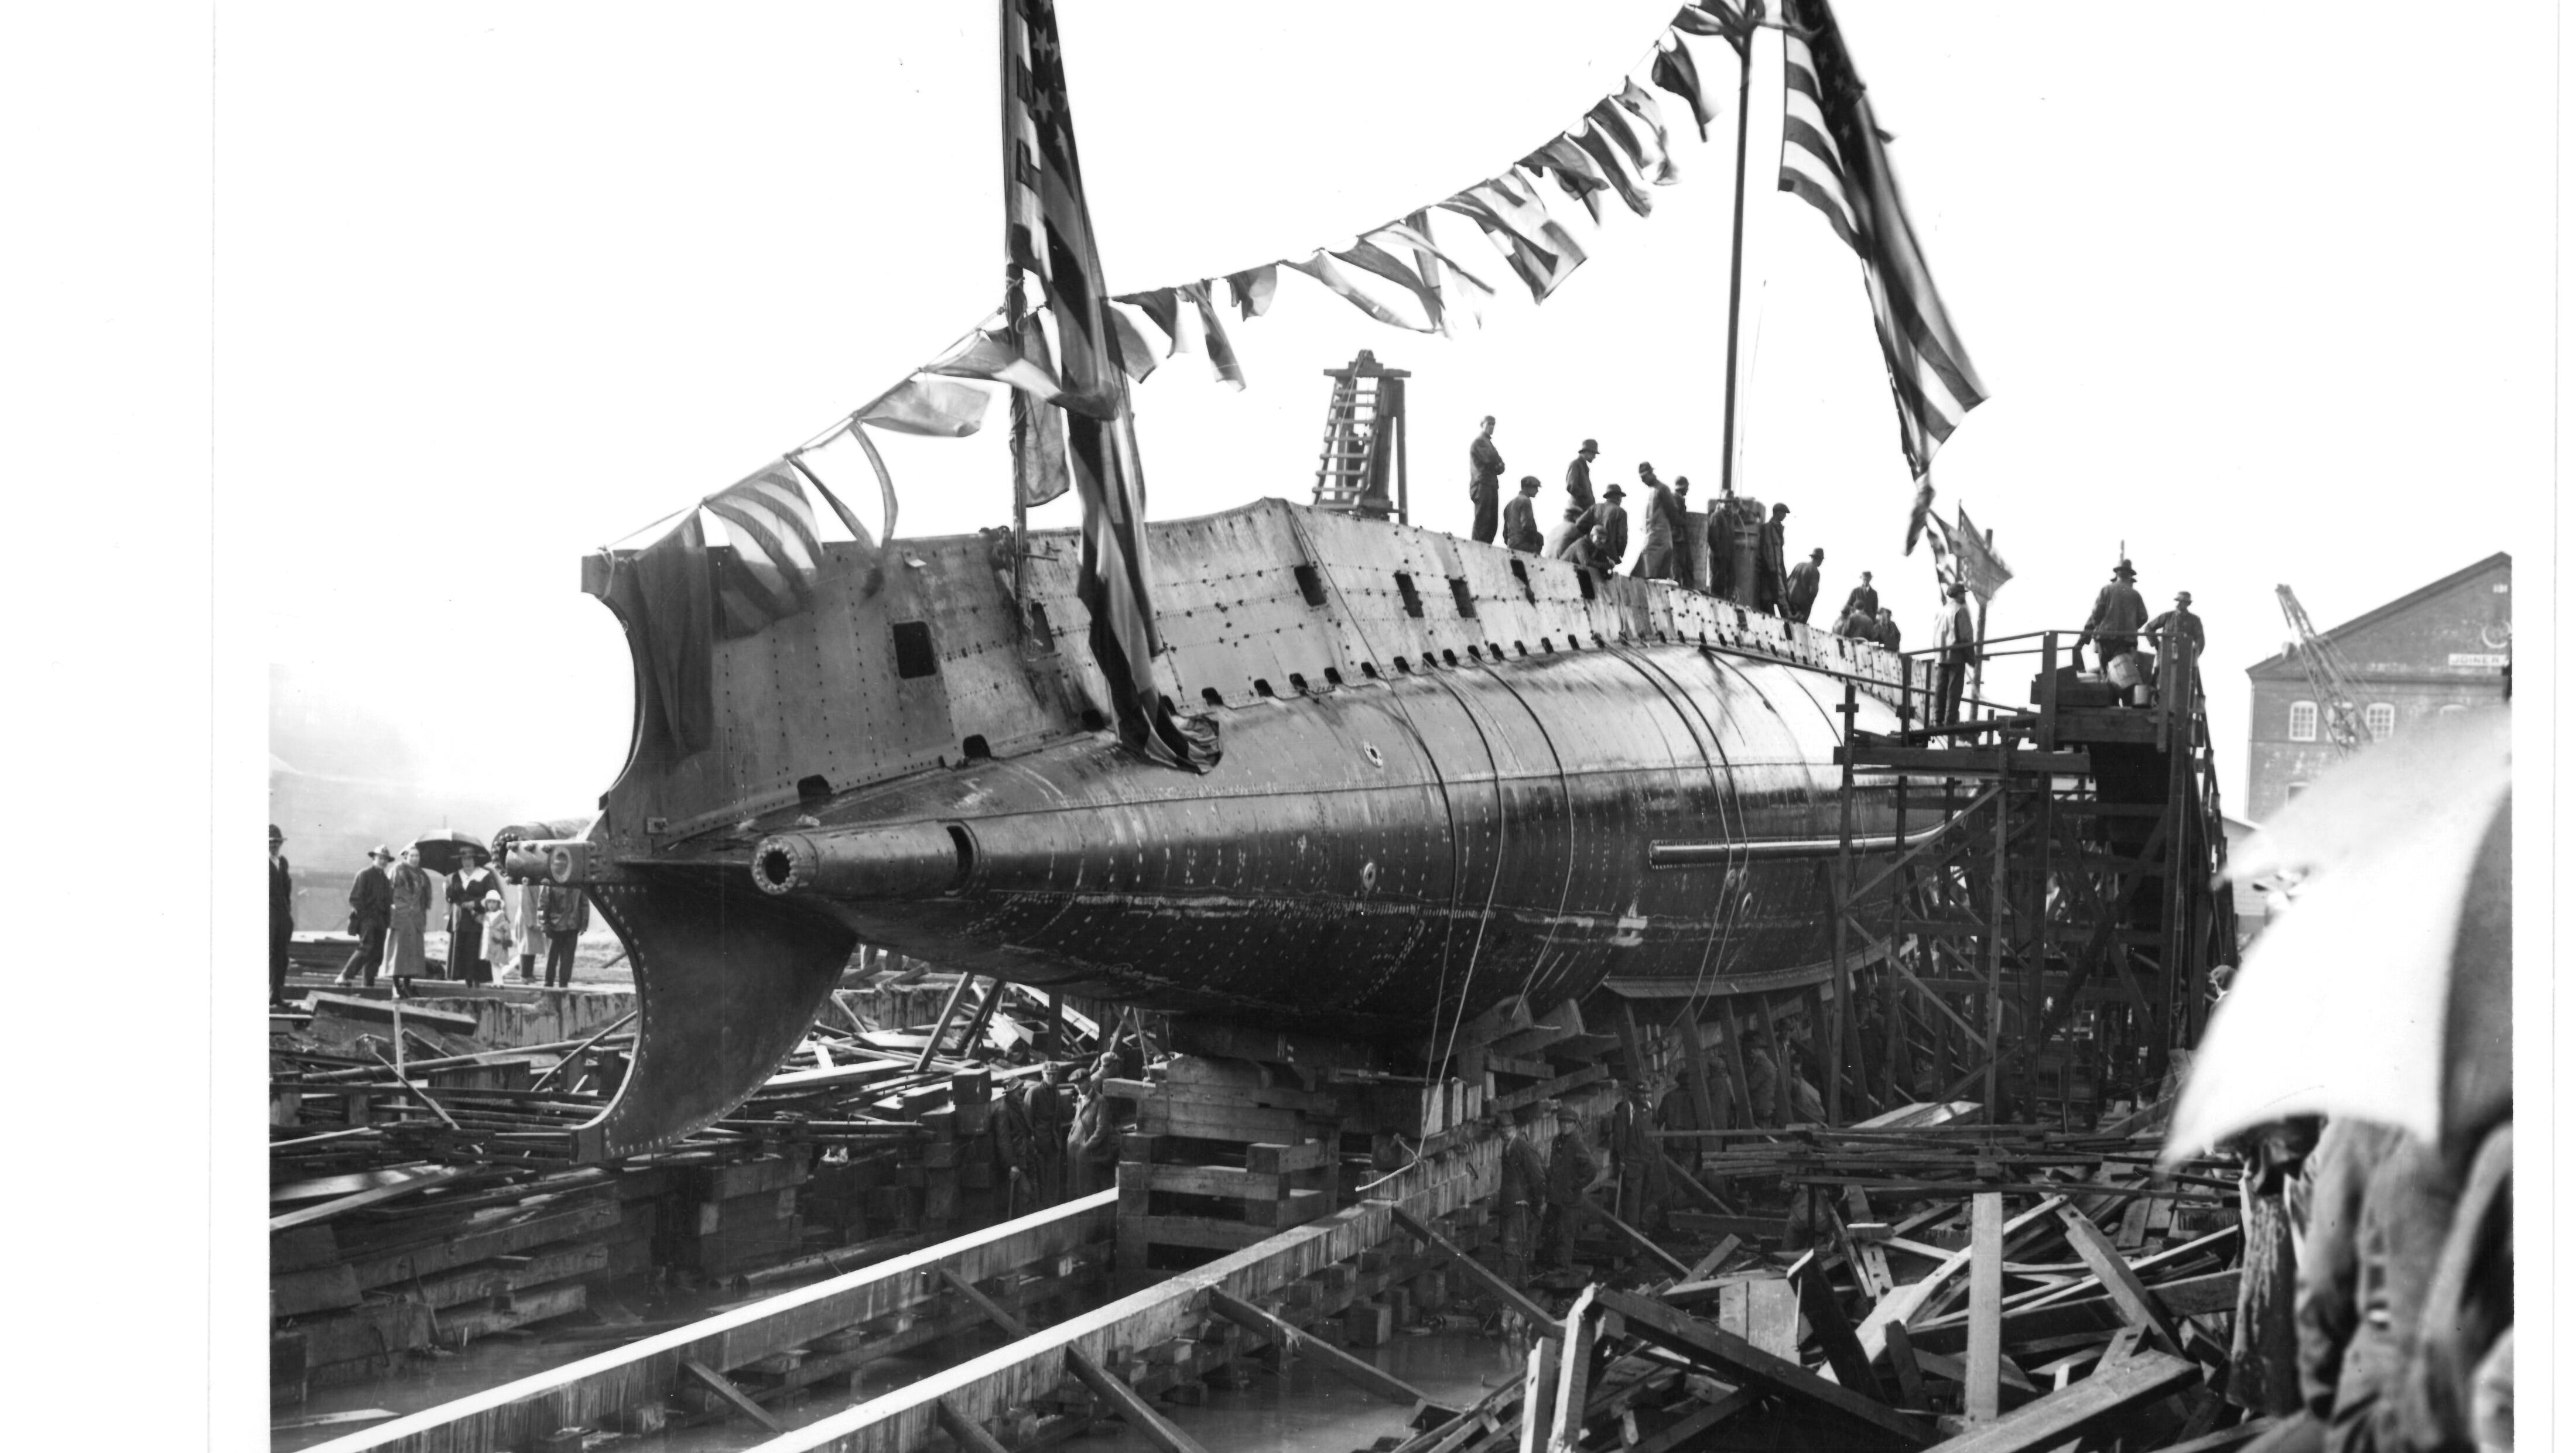 Launching of O-Two, dated 1918.